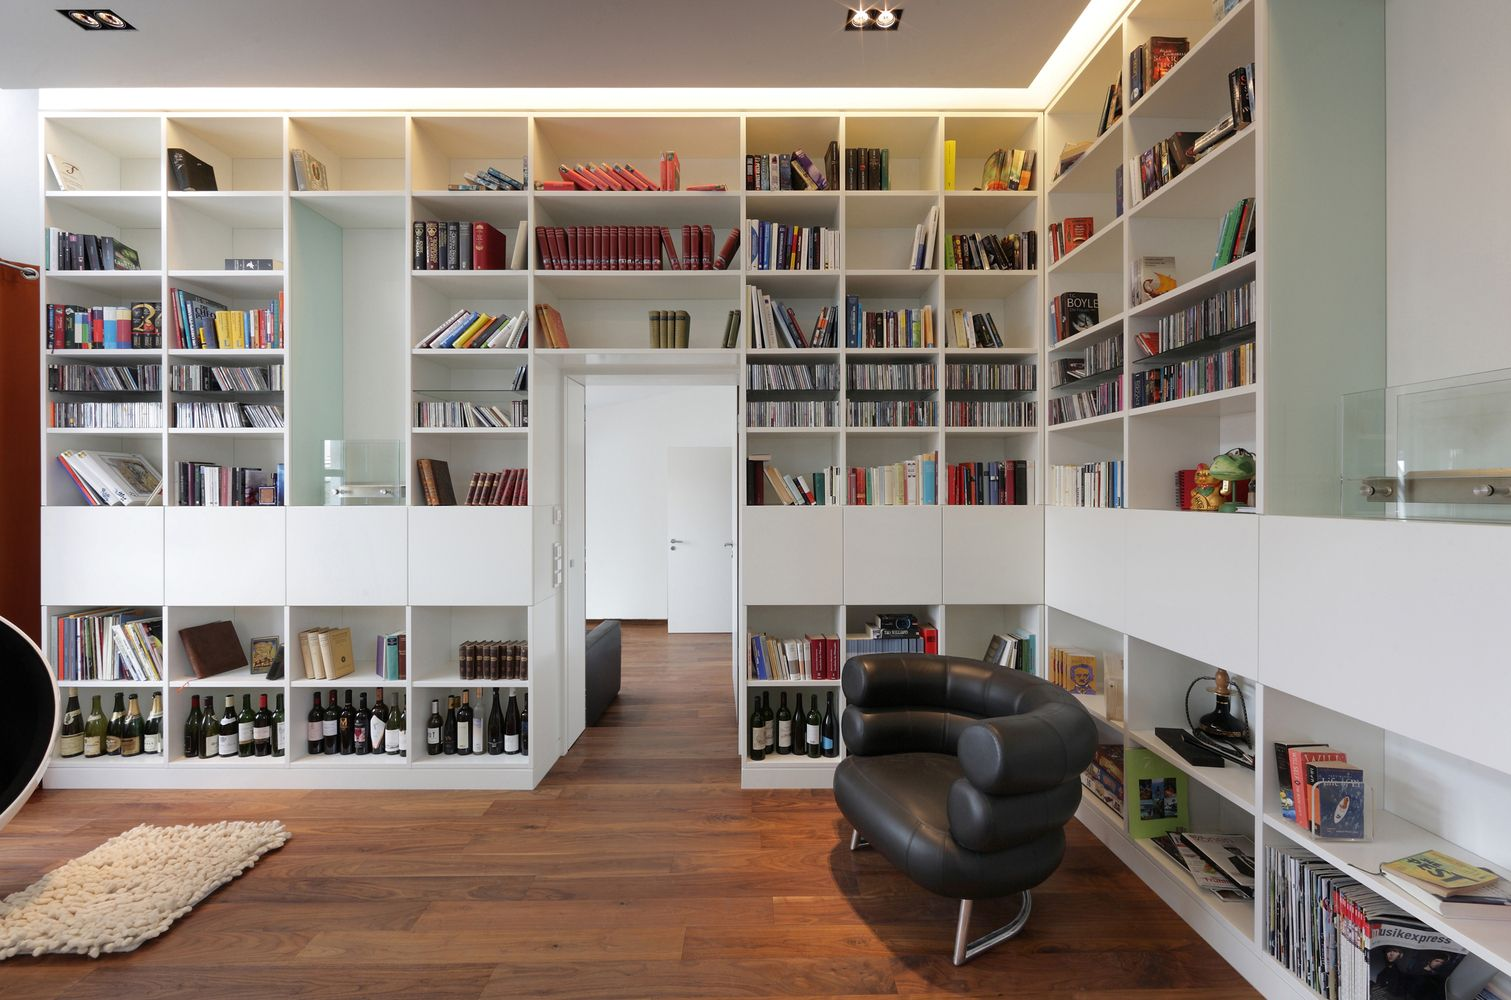 Gallery of Penthouse Apartment in Bielefeld / Architekten